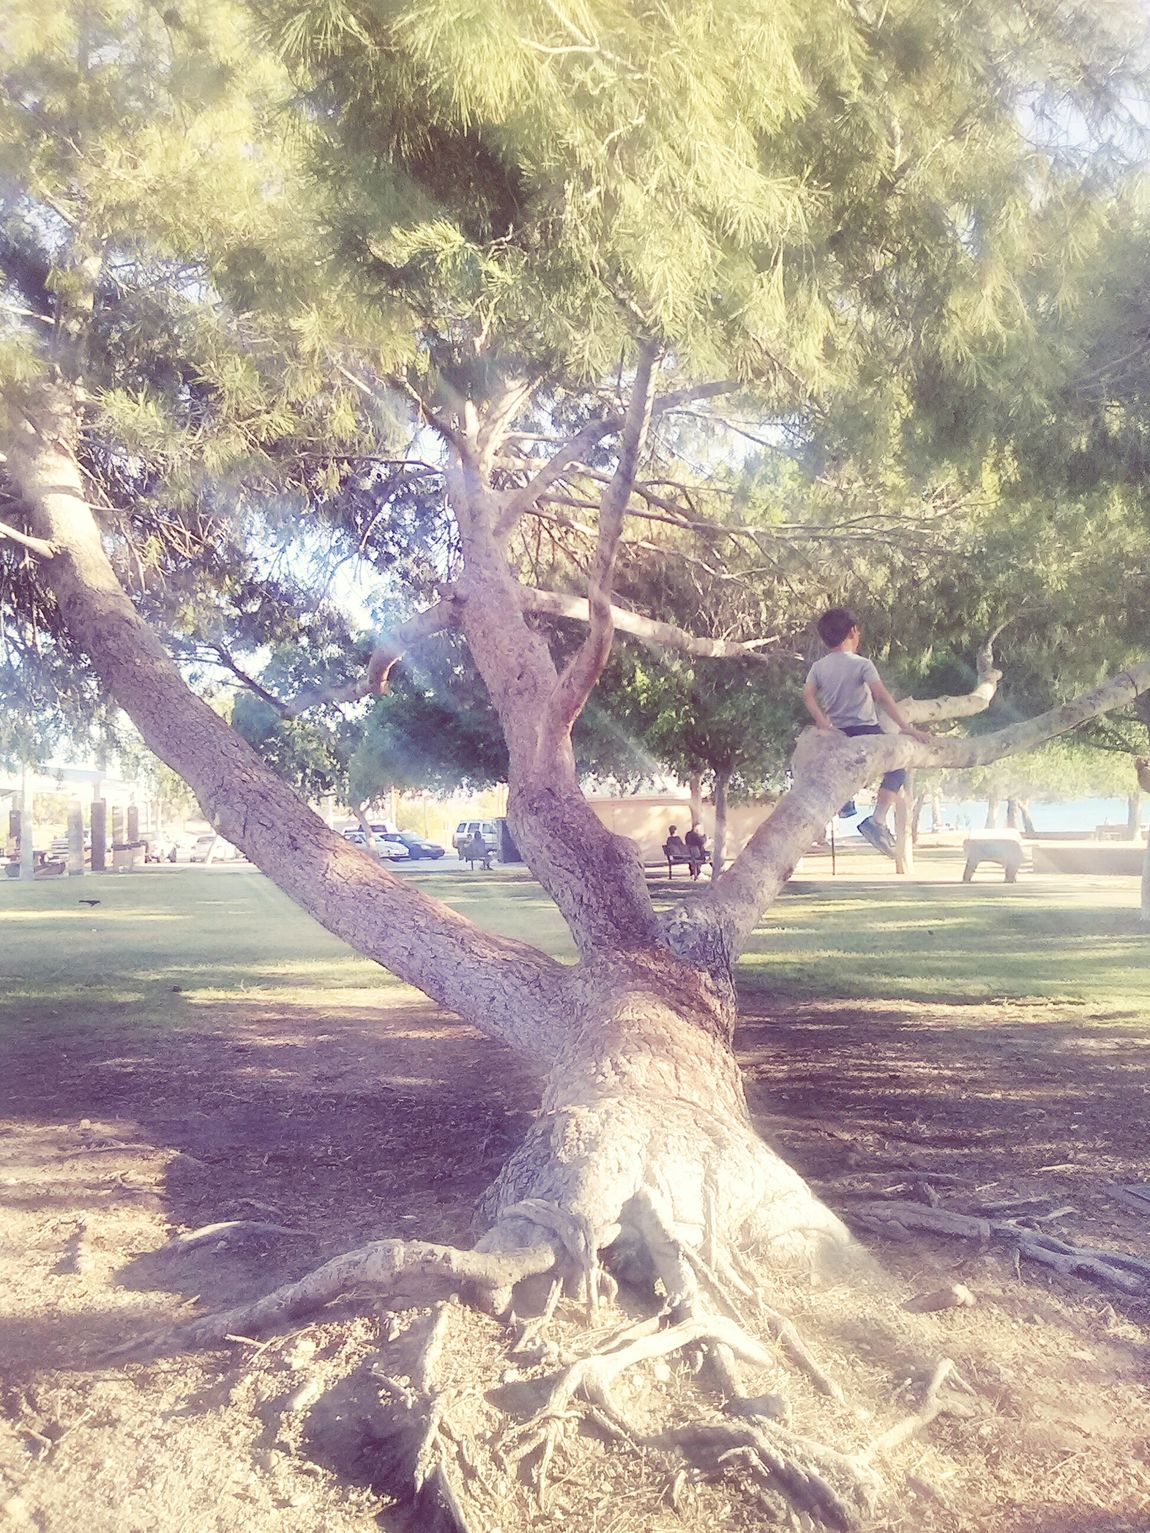 Taking Photos Boy In A Tree Outdoor Photography Simple Things In Life Feel Good Photography Lake Havasu City Showcase April The Essence Of Summer